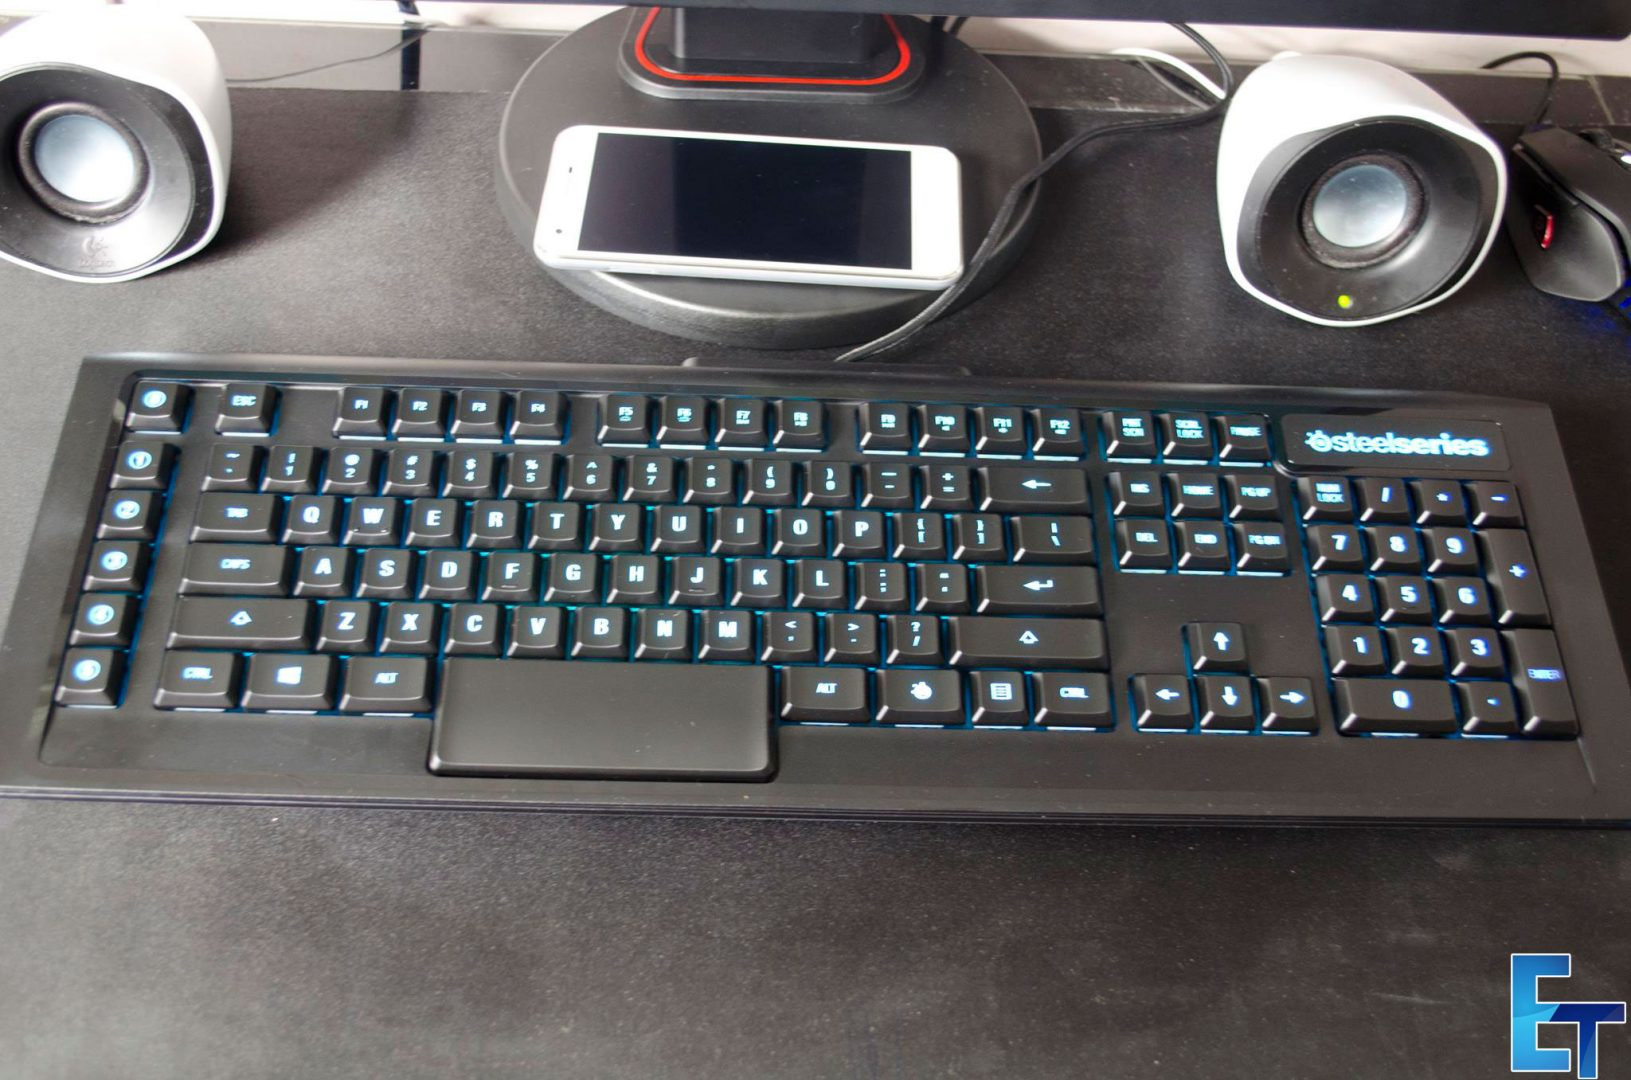 sTEELsERIES-aPEX-m800-mECHANICAL-gAMING-KEYBOARD-rEVIEW_2